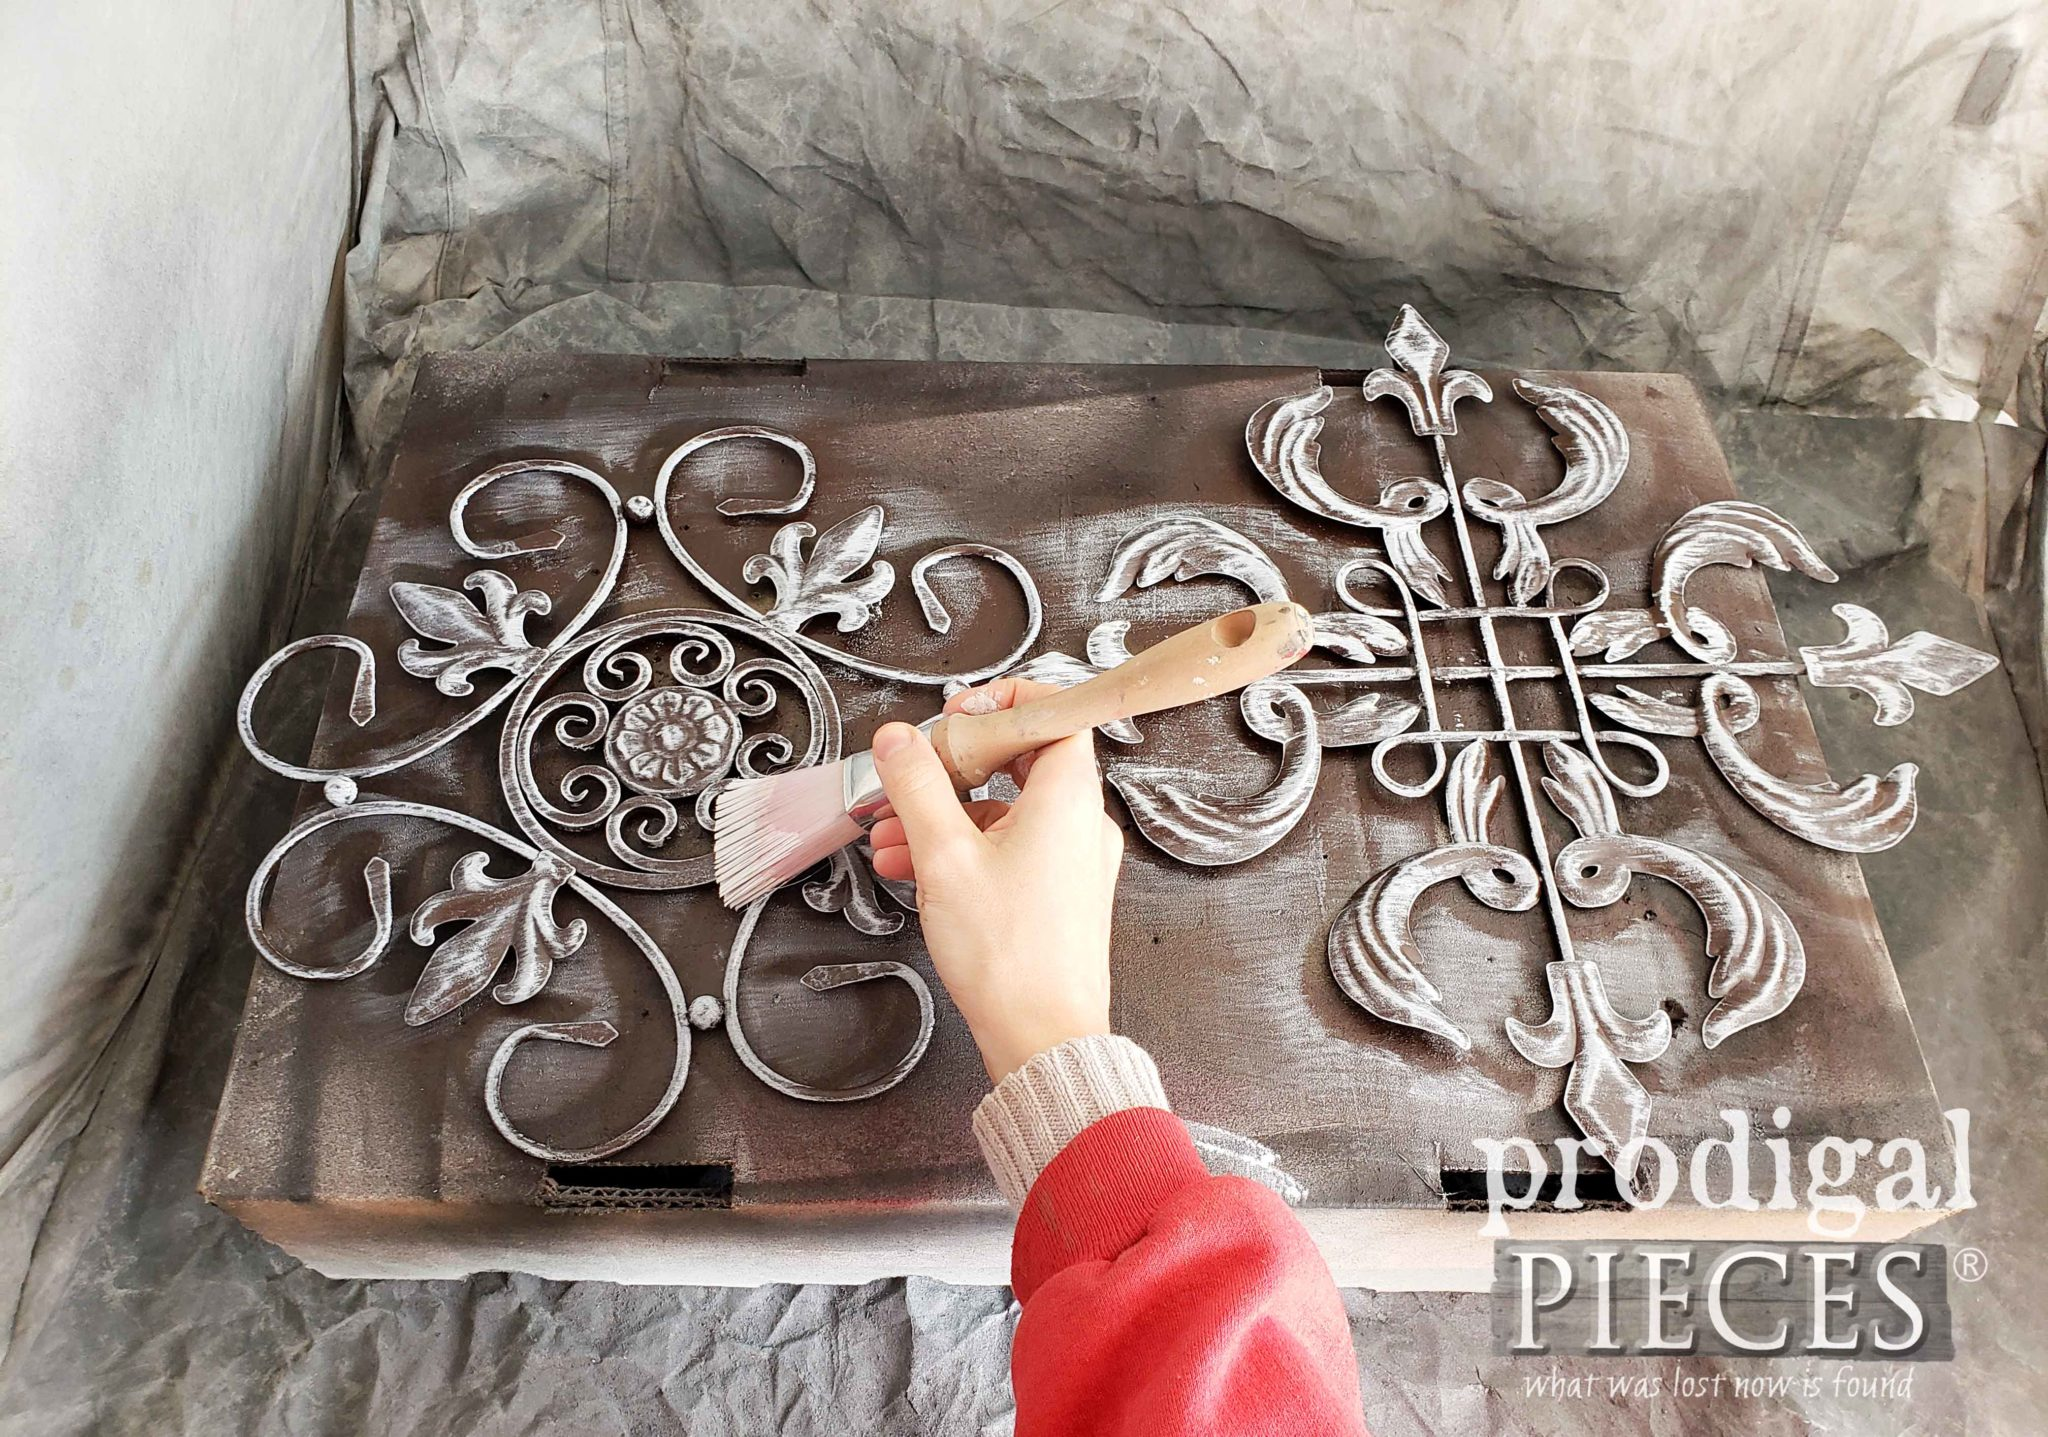 Whitewashing Metal Art for Farmhouse Wall Decor by Prodigal Pieces | prodigalpieces.com